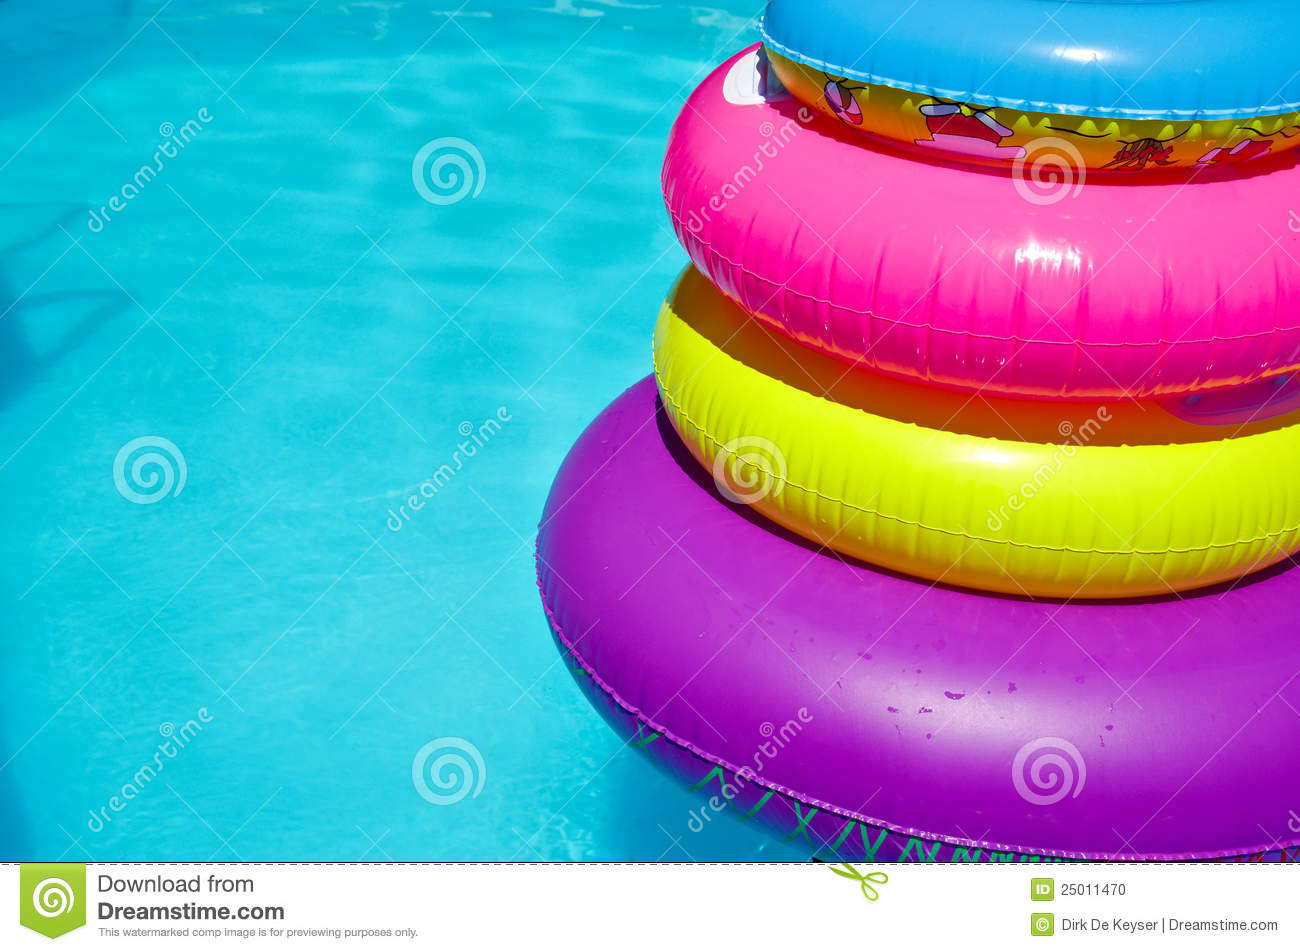 Tubes in swimming pool